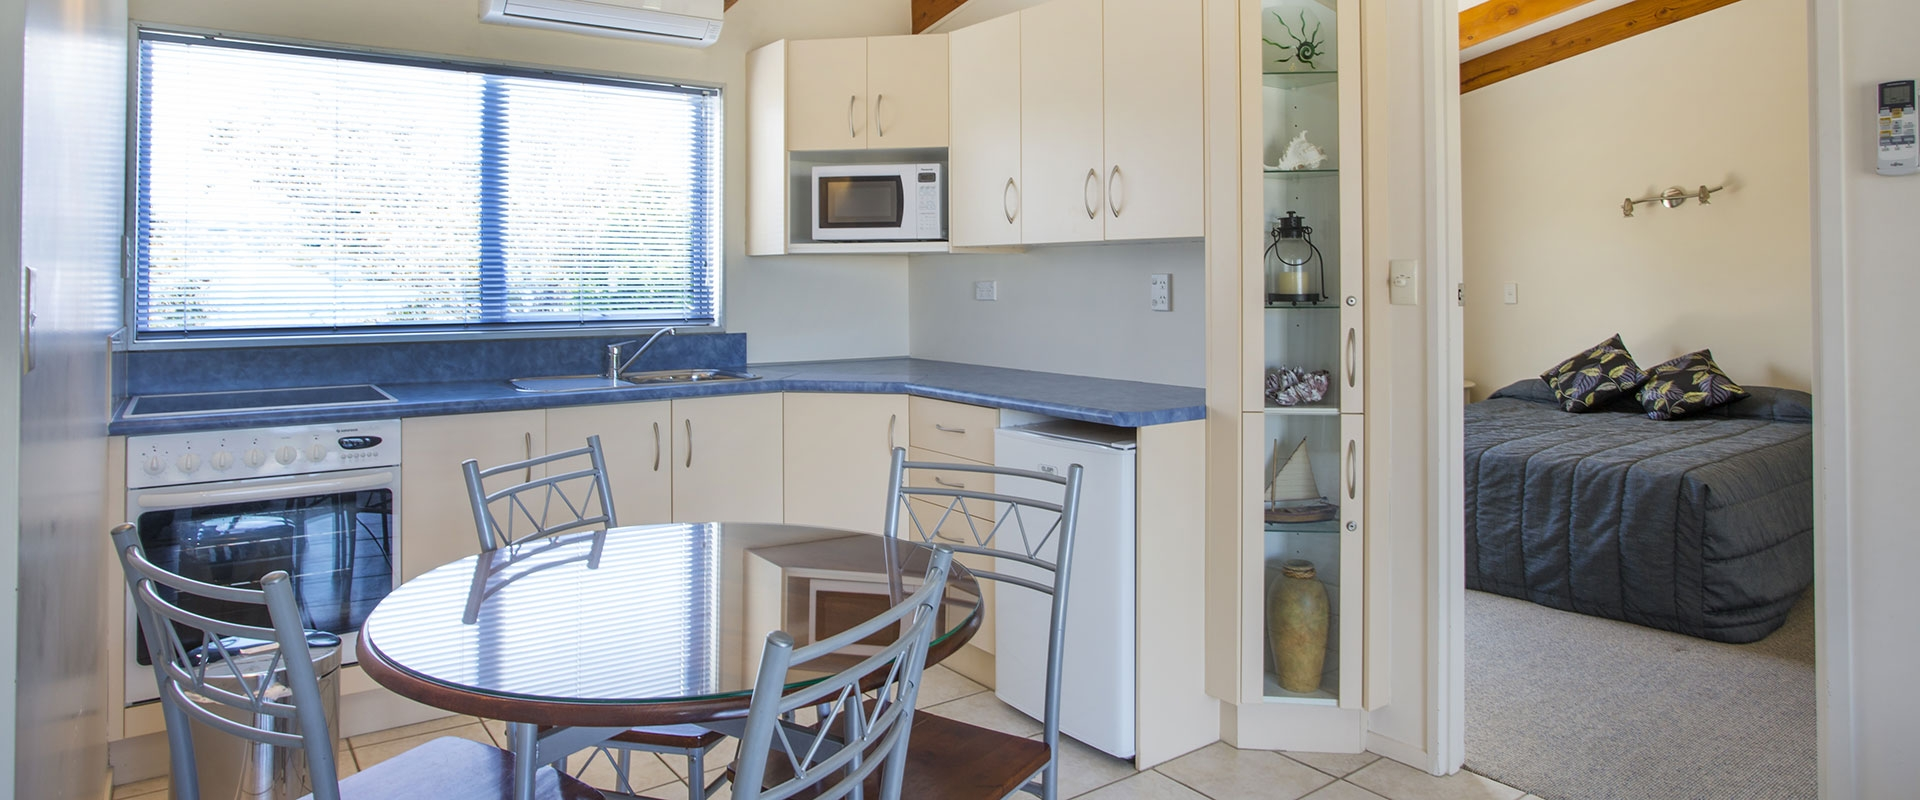 full kitchen facilities in all units